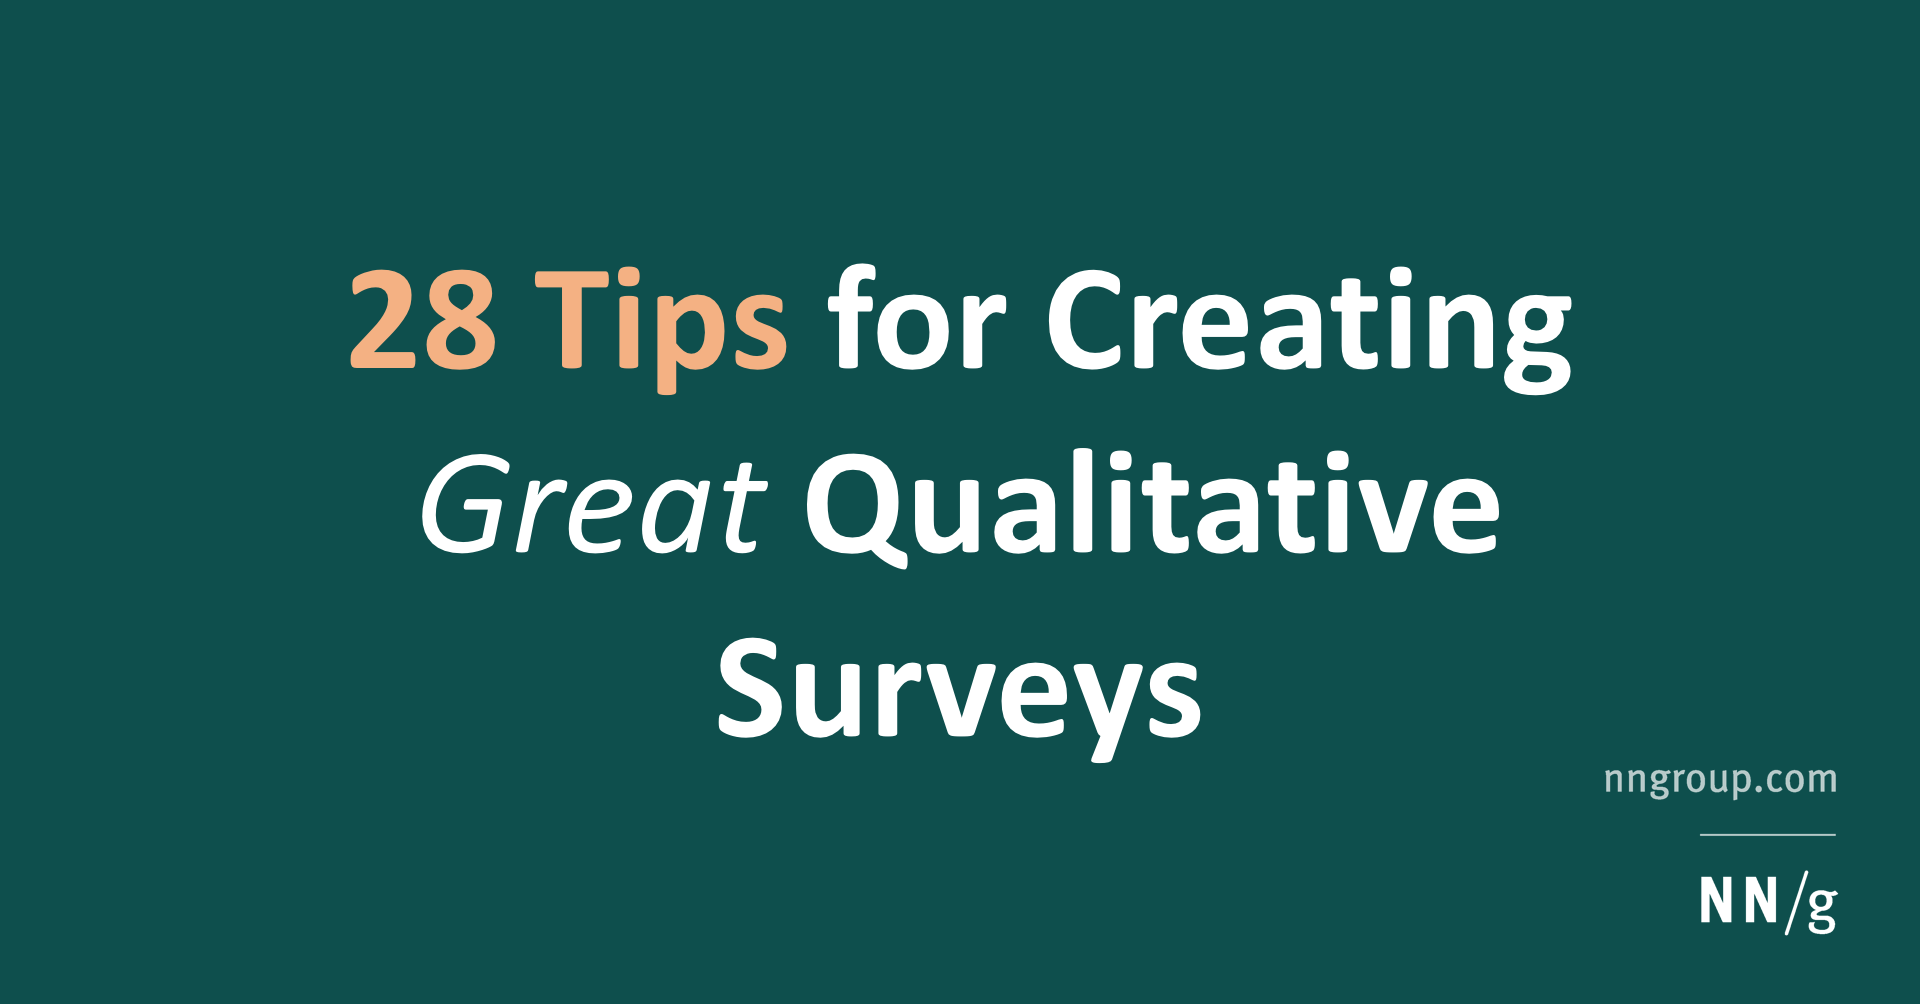 28 Tips for Creating Great Qualitative Surveys